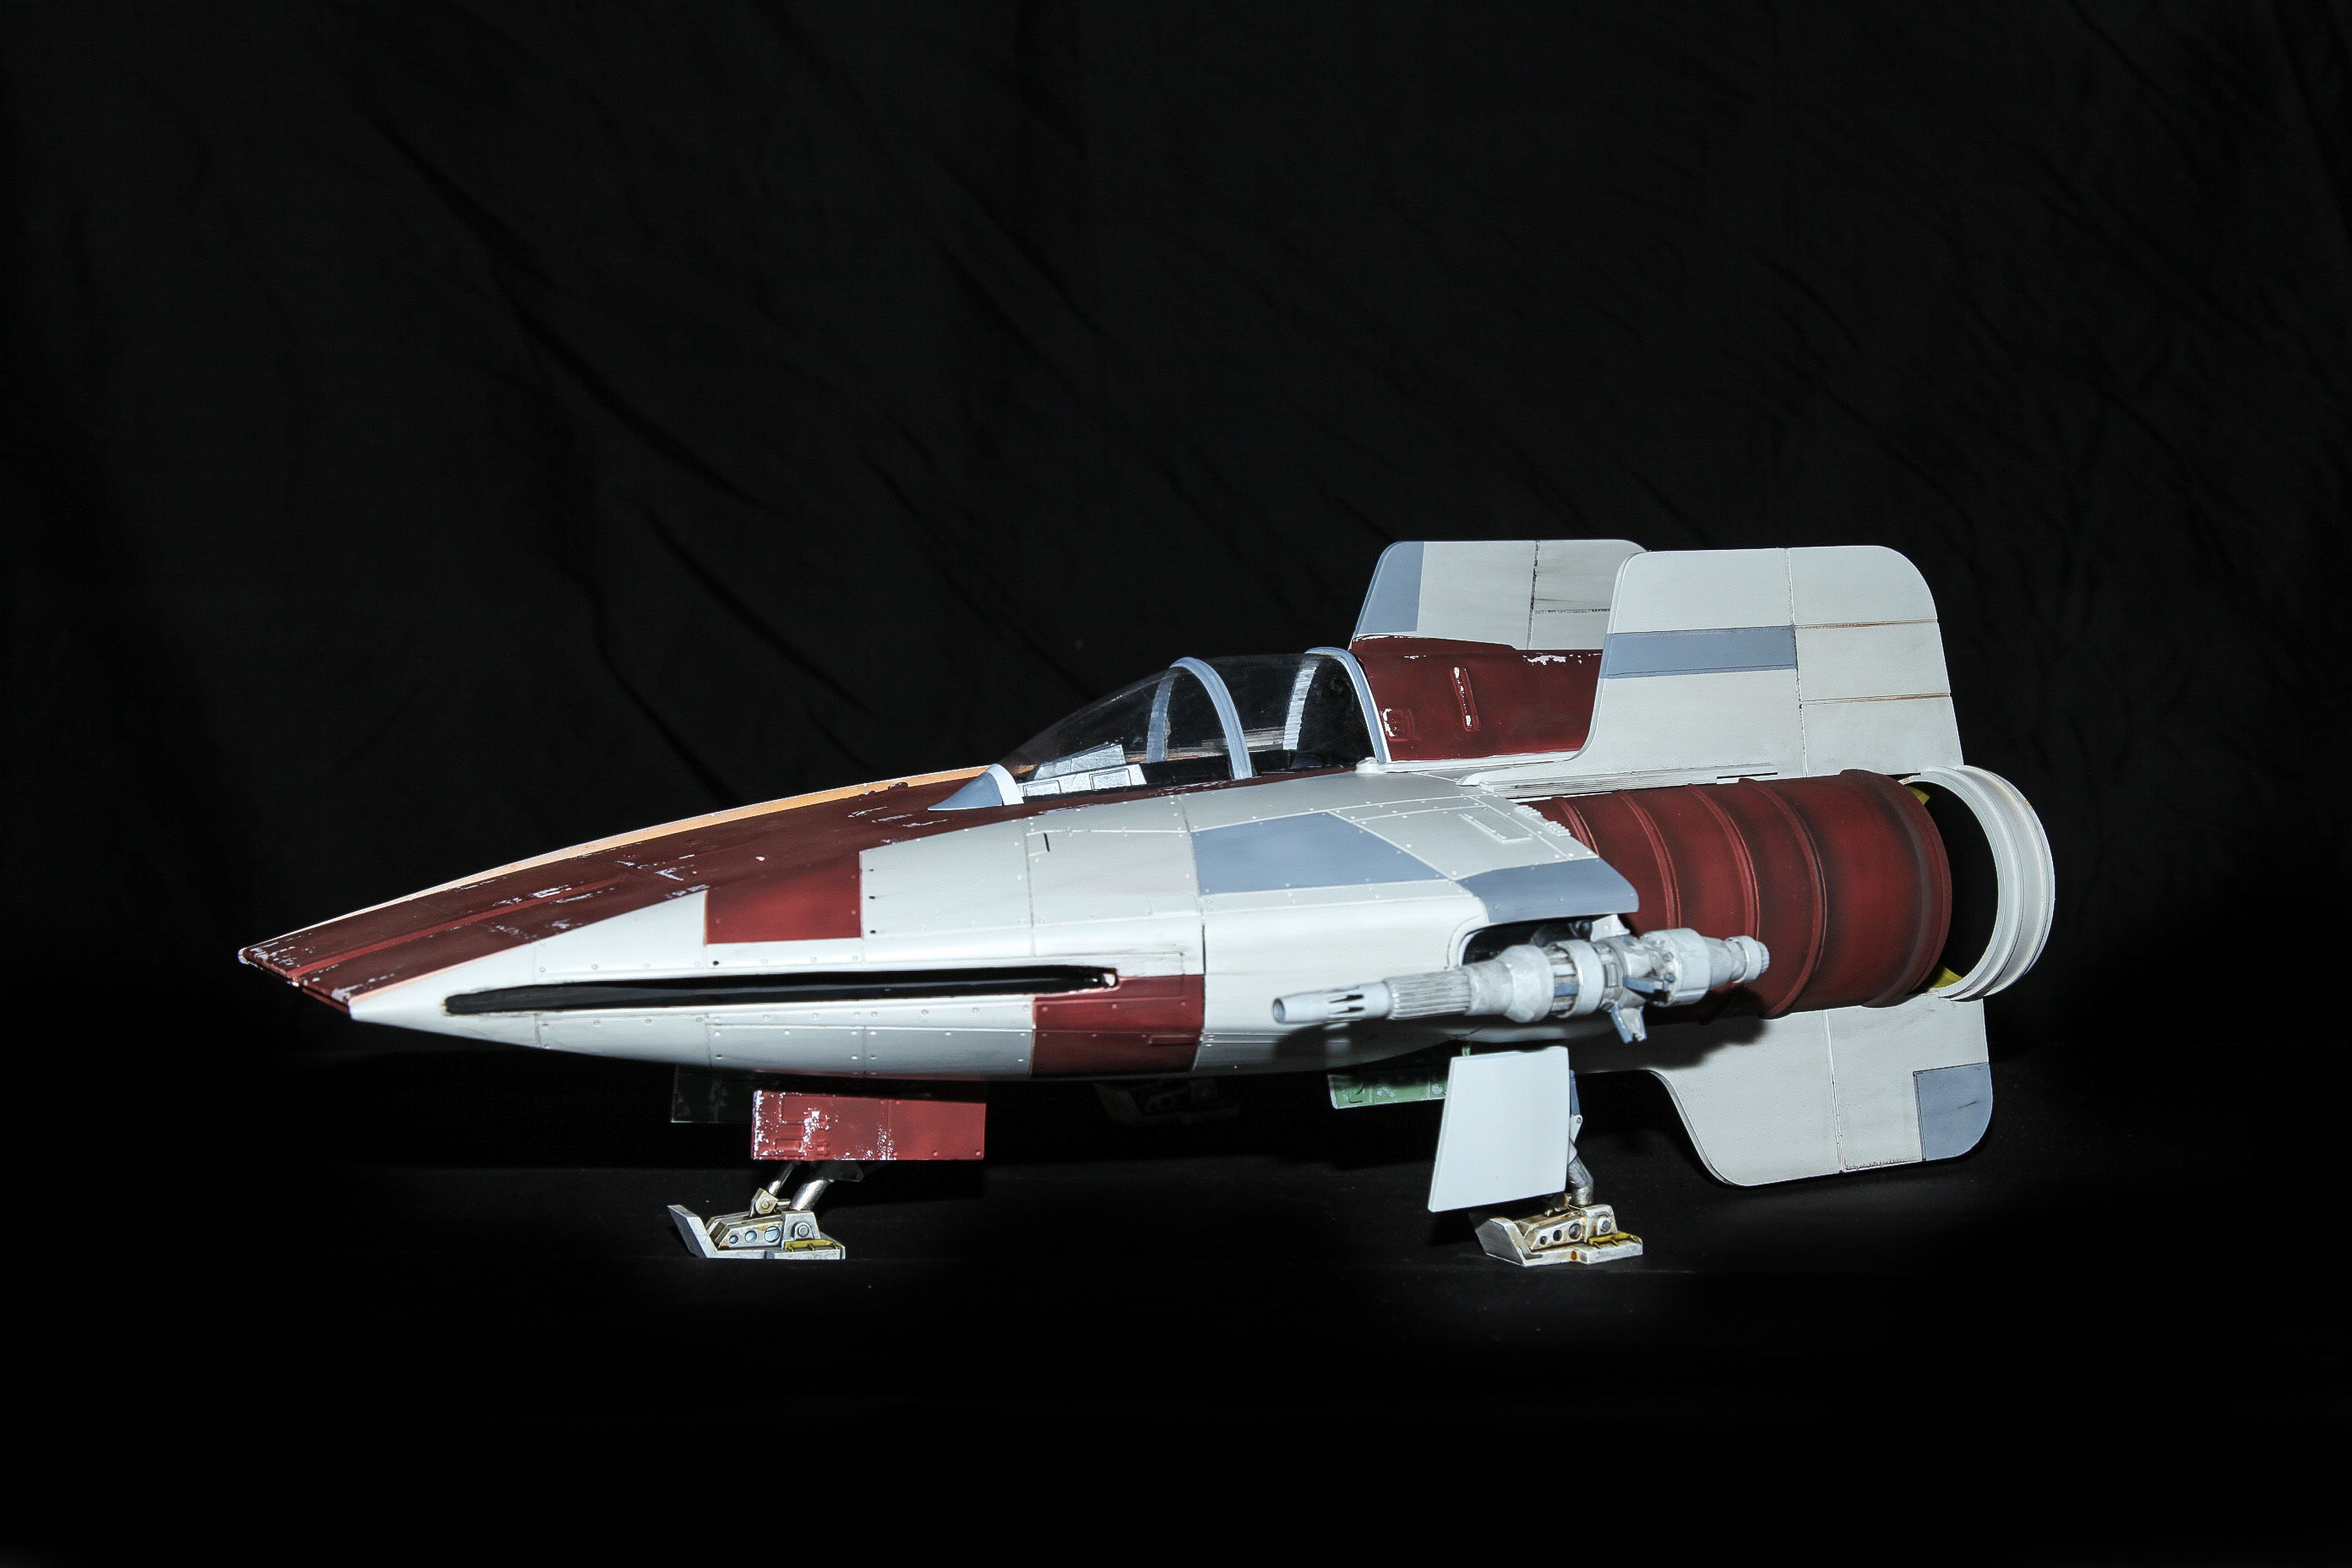 Star Wars A-Wing fighter